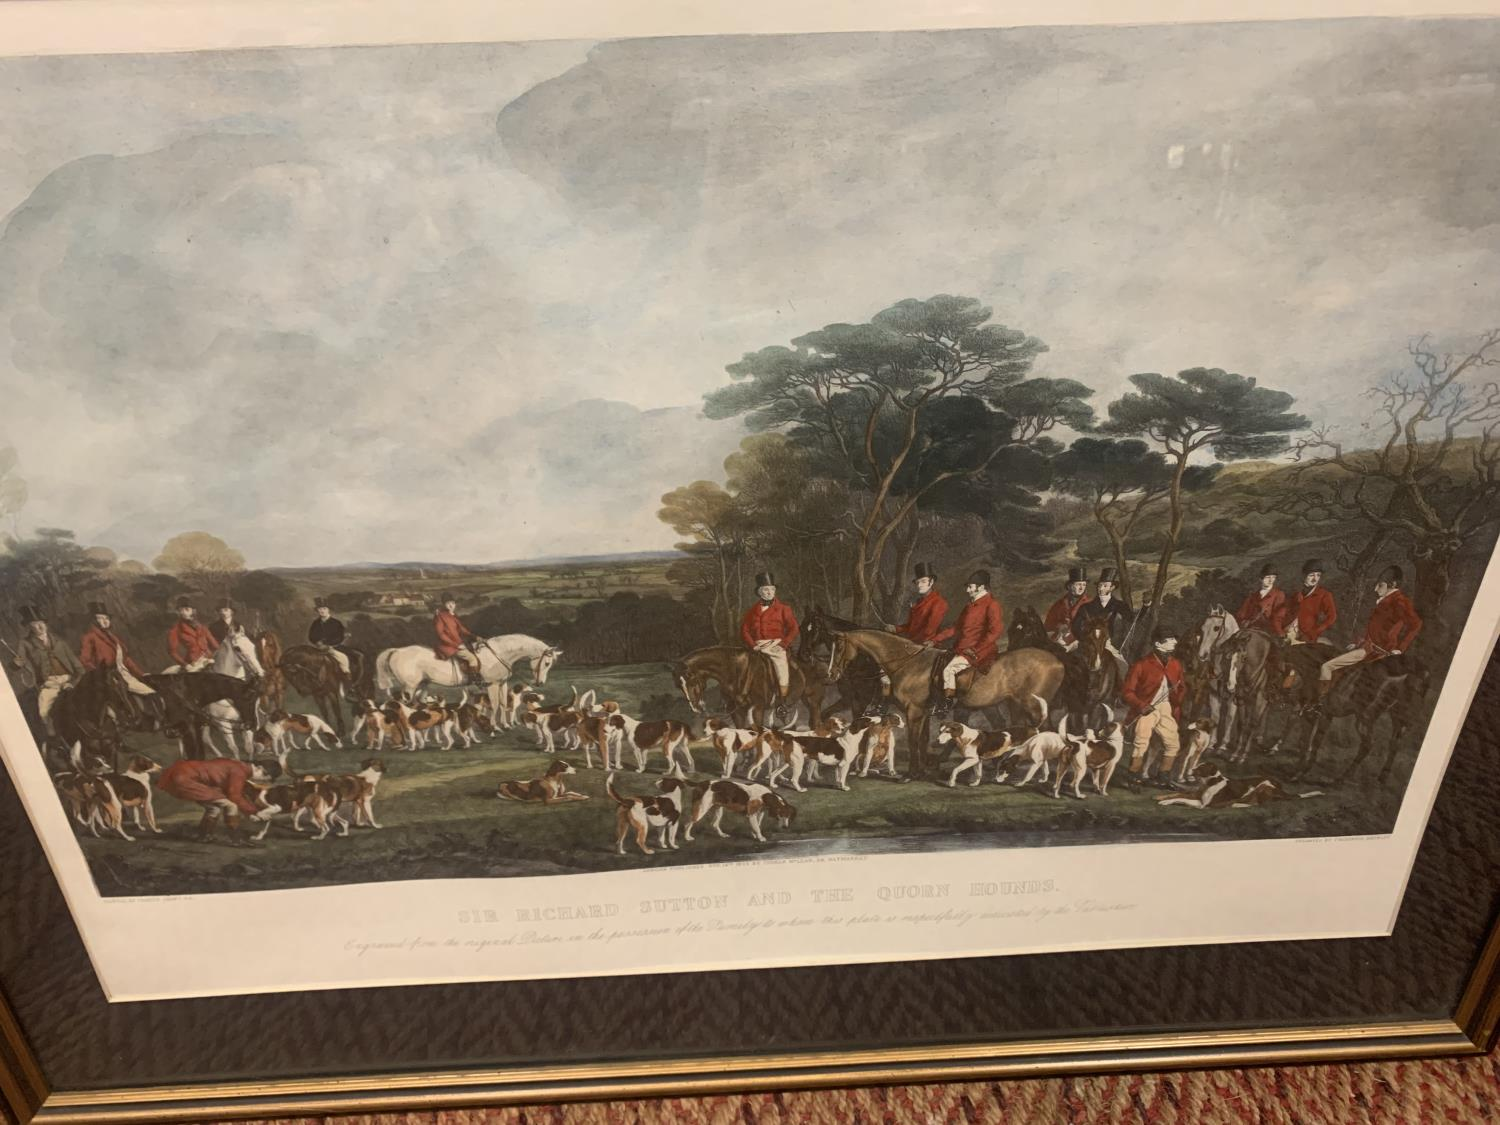 A FRAMED ETCHING OF SIR RICHARD HUTTON AND THE QUORN HOUNDS - Image 4 of 8